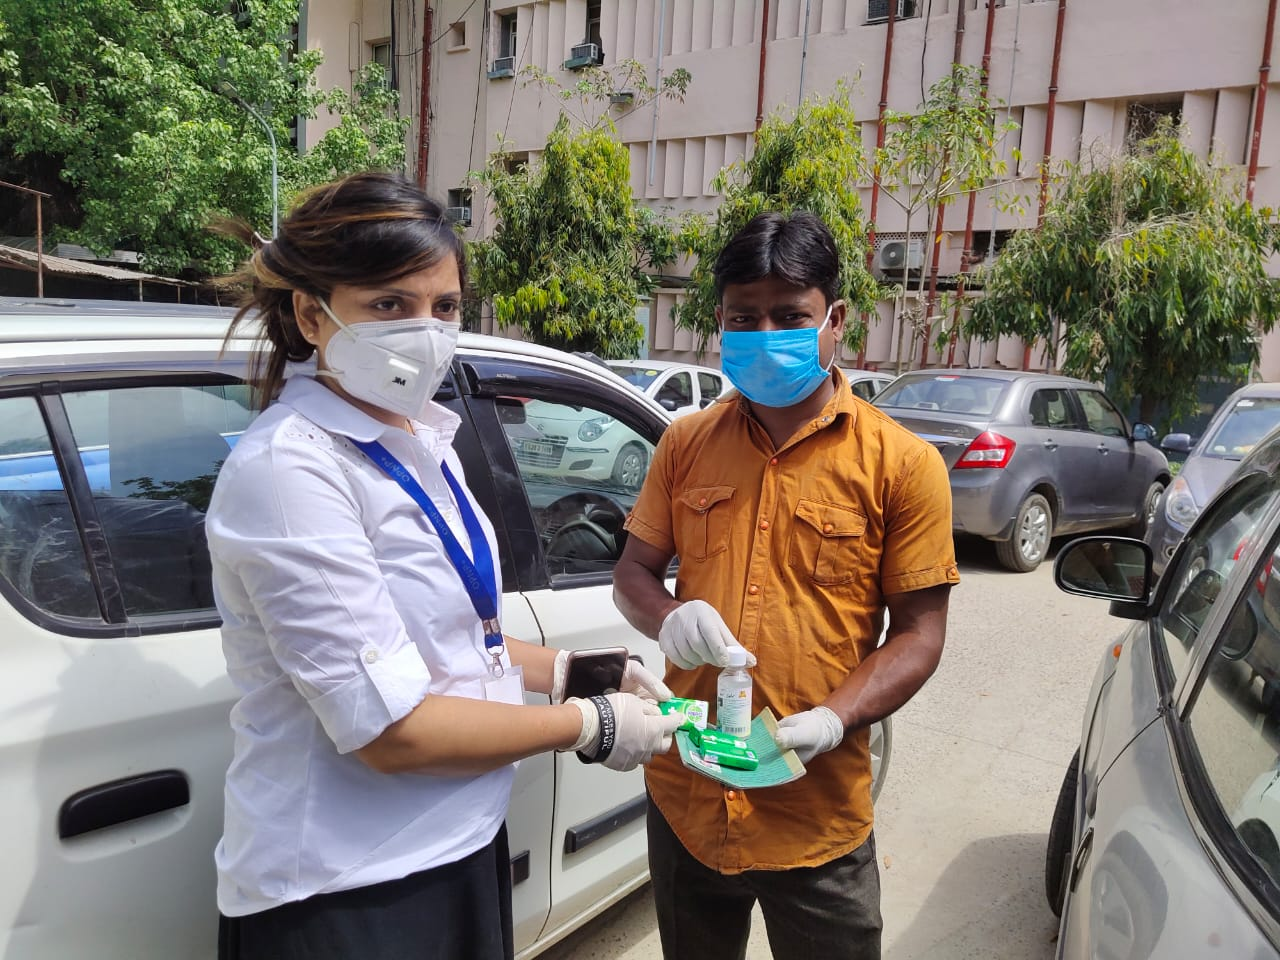 One of our outreach workers distributing hygiene product